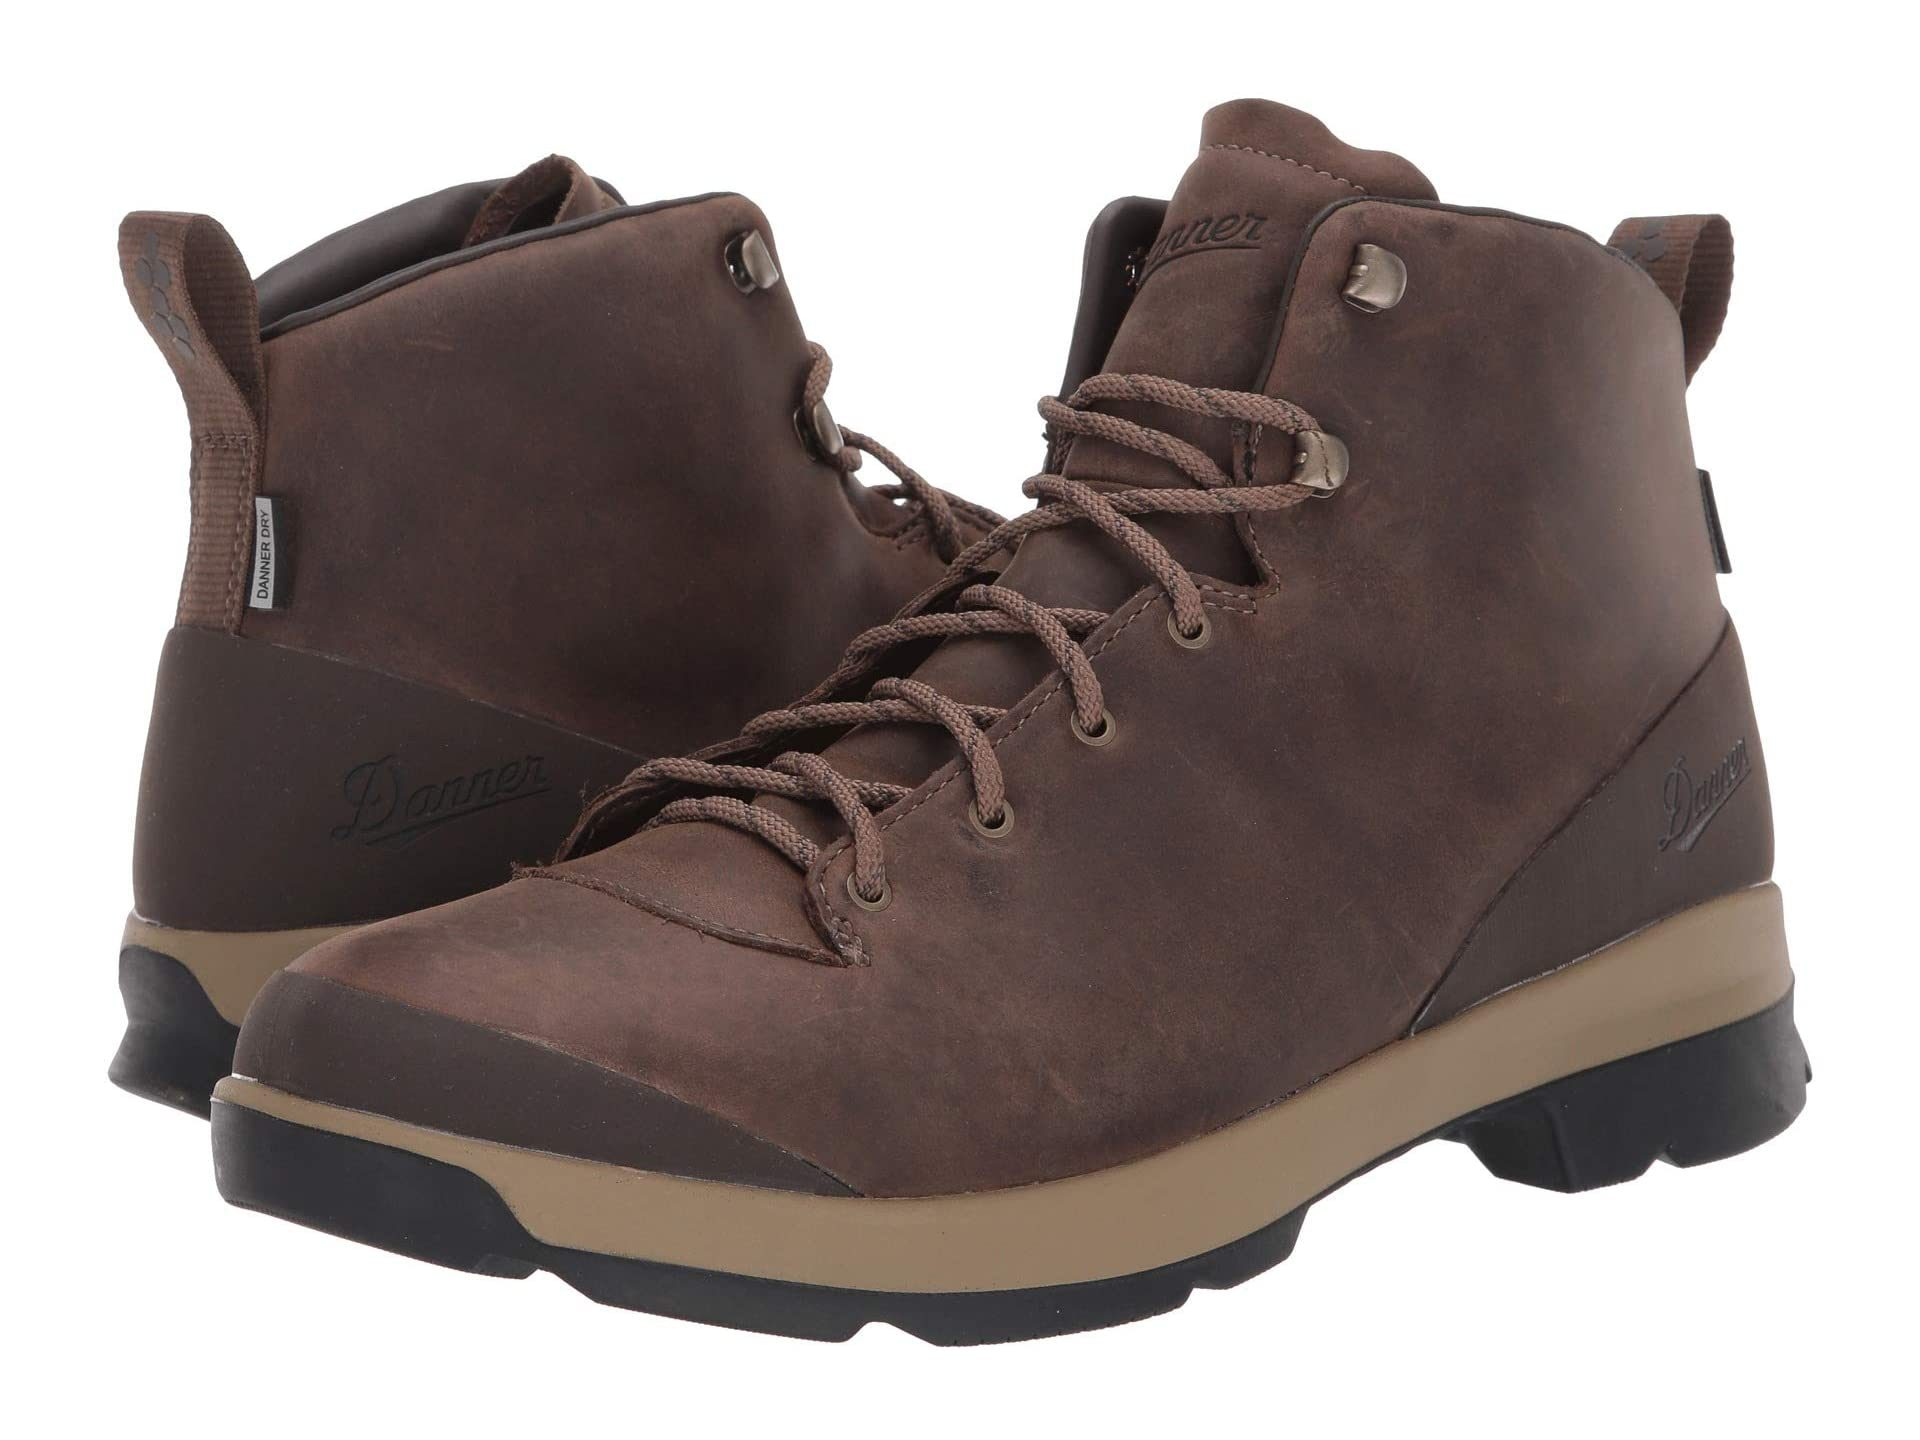 Danner Pub Garden work boot